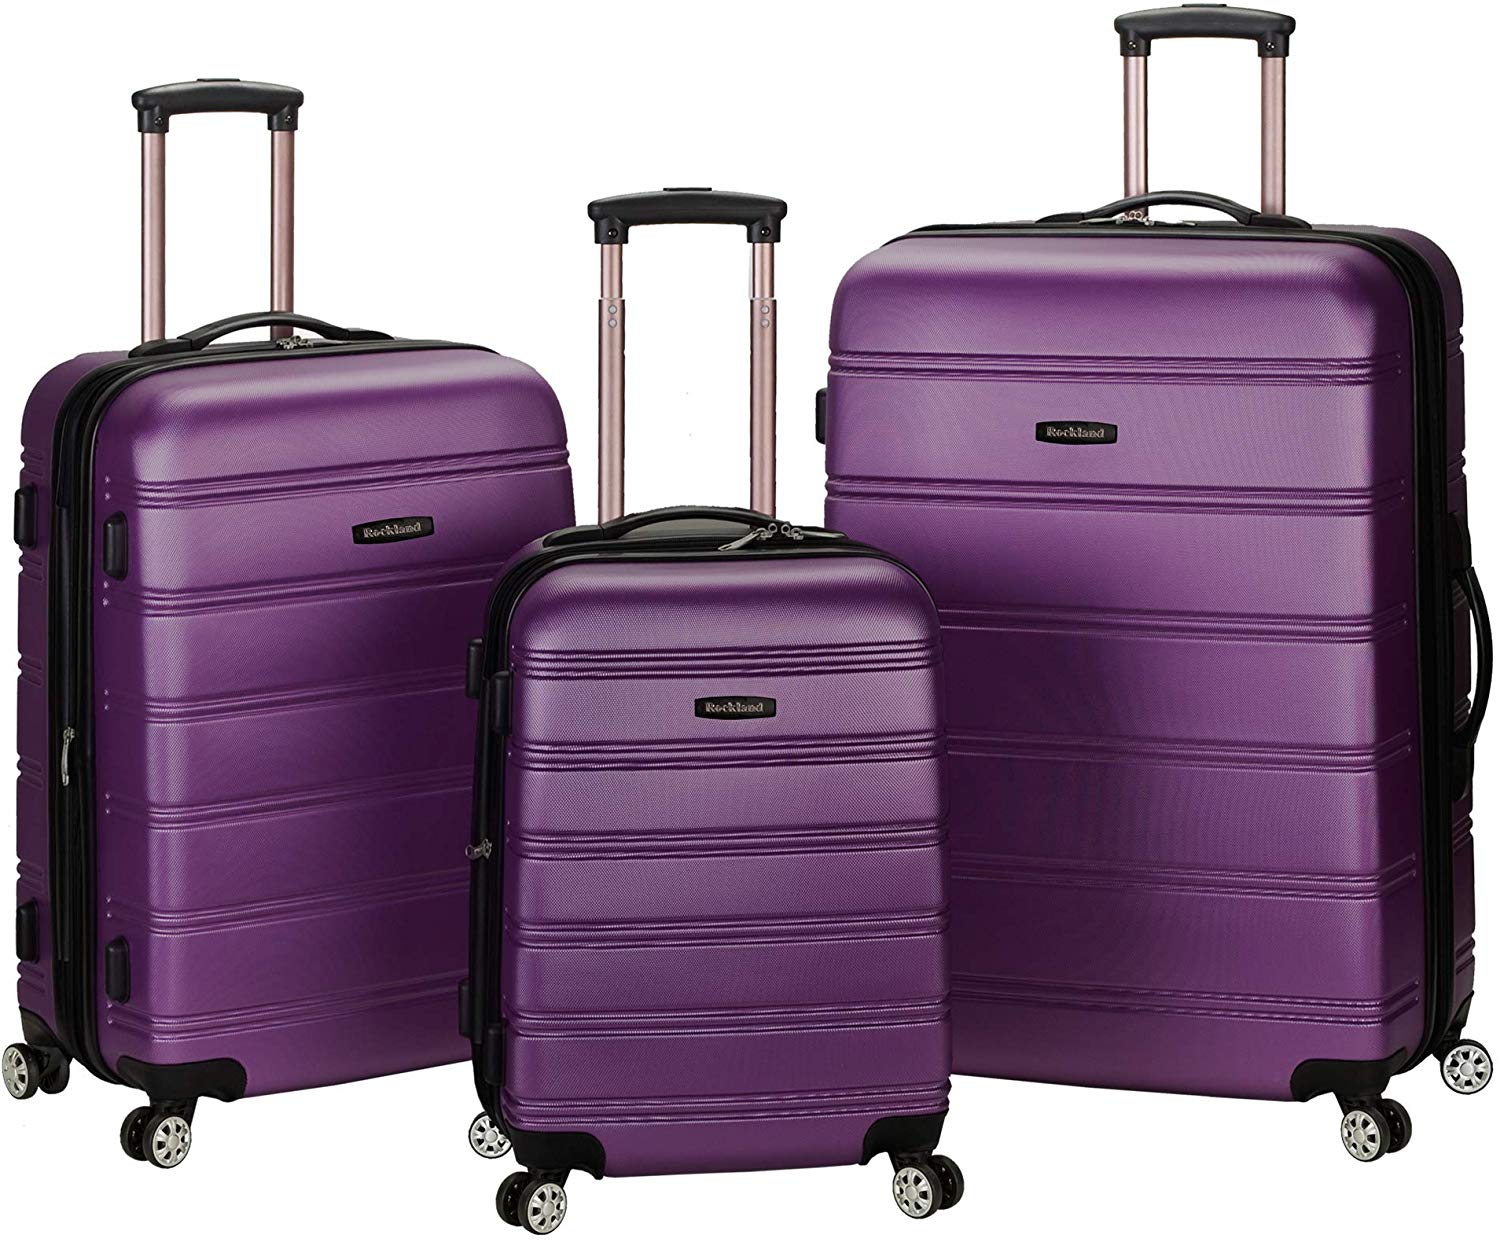 Rockland Luggage Brand Review